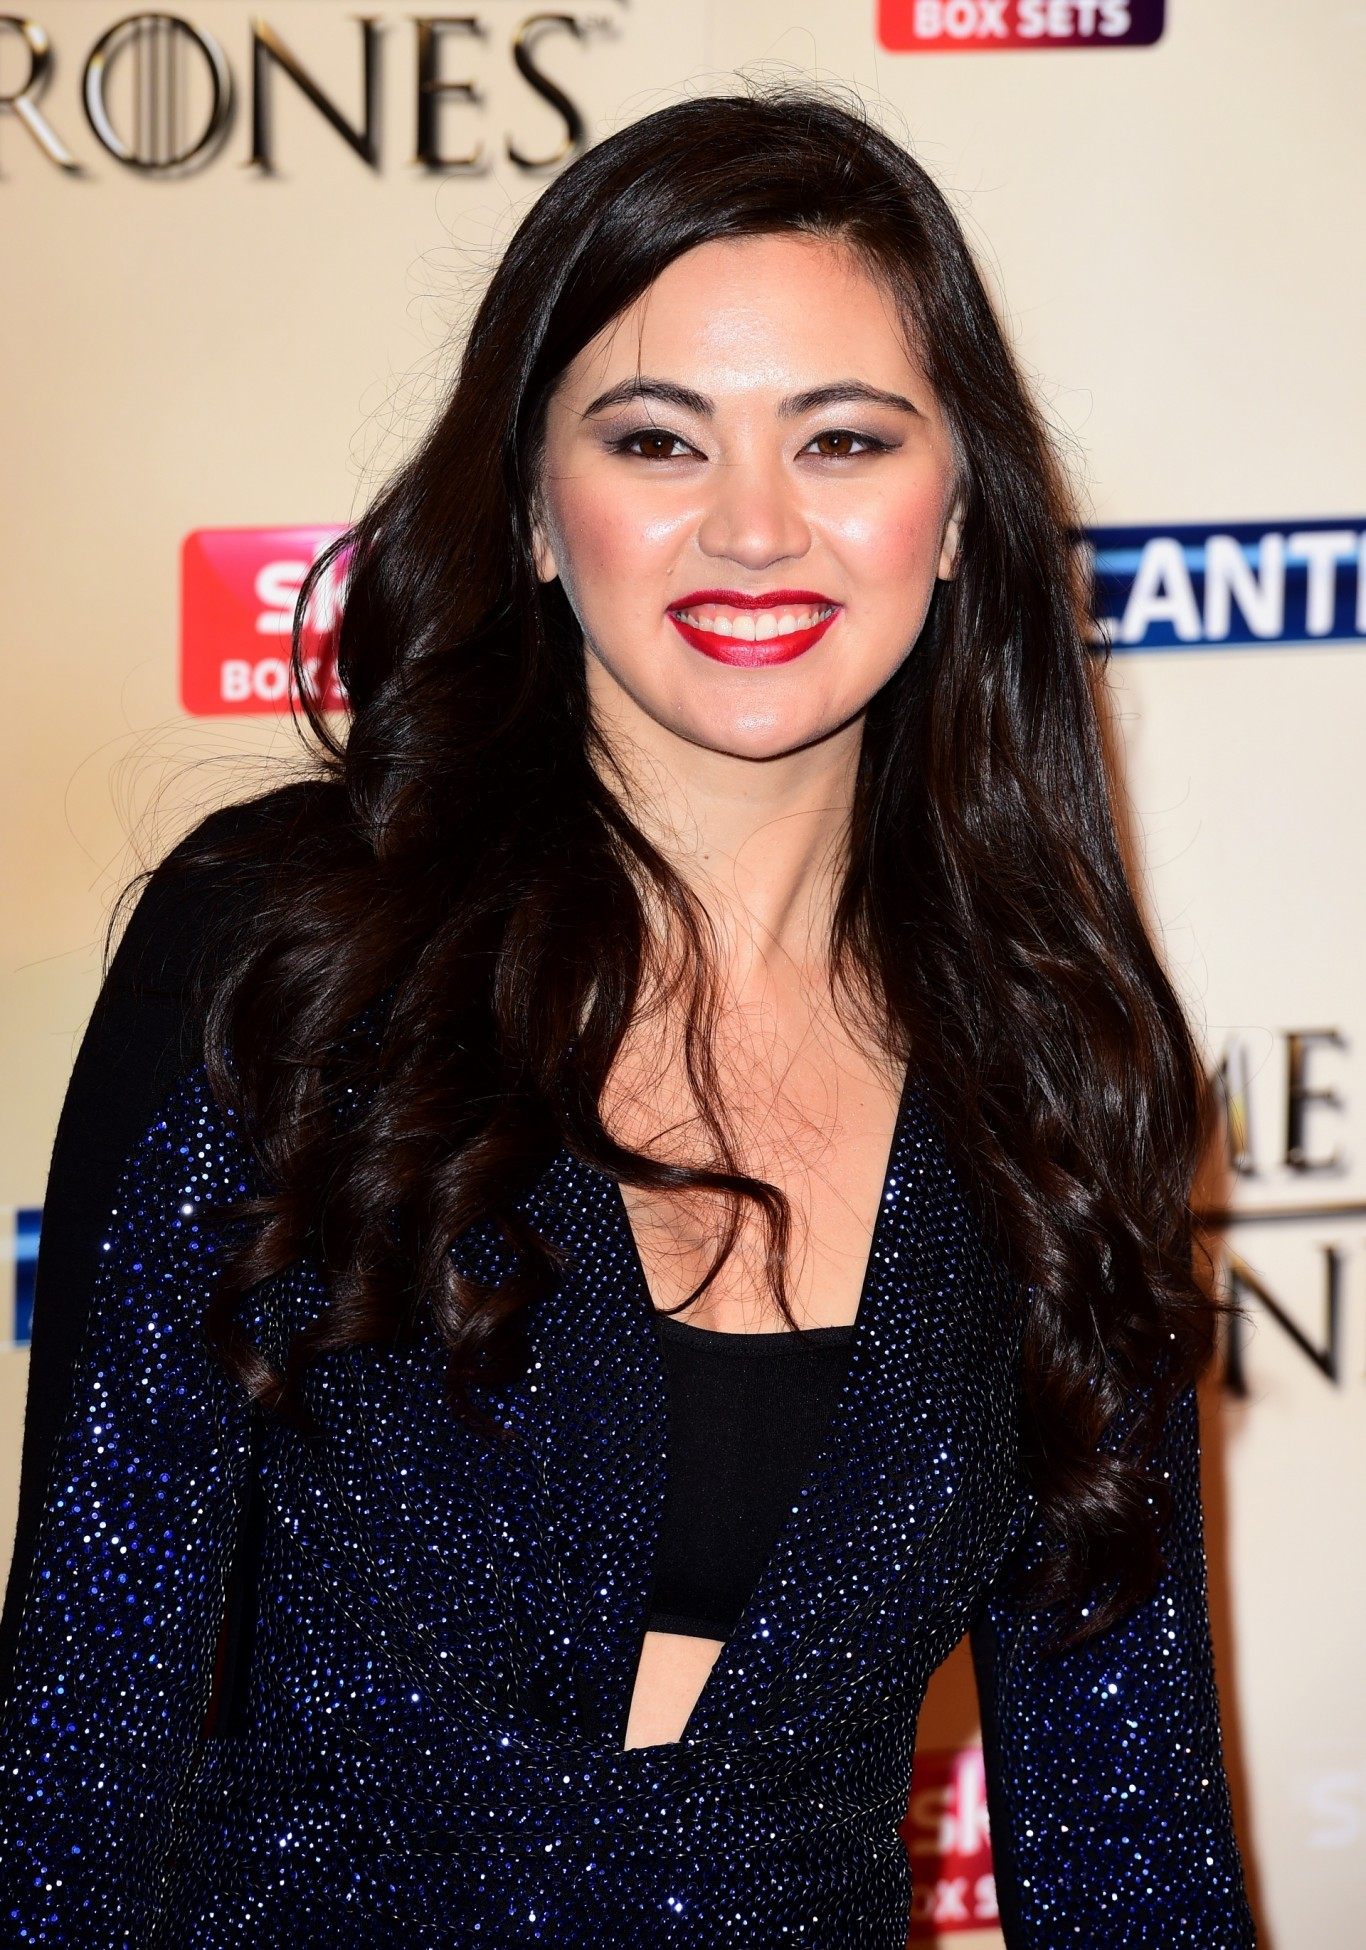 Jessica Henwick Nude jessica henwick nude, naked - pics and videos - imperiodefamosas